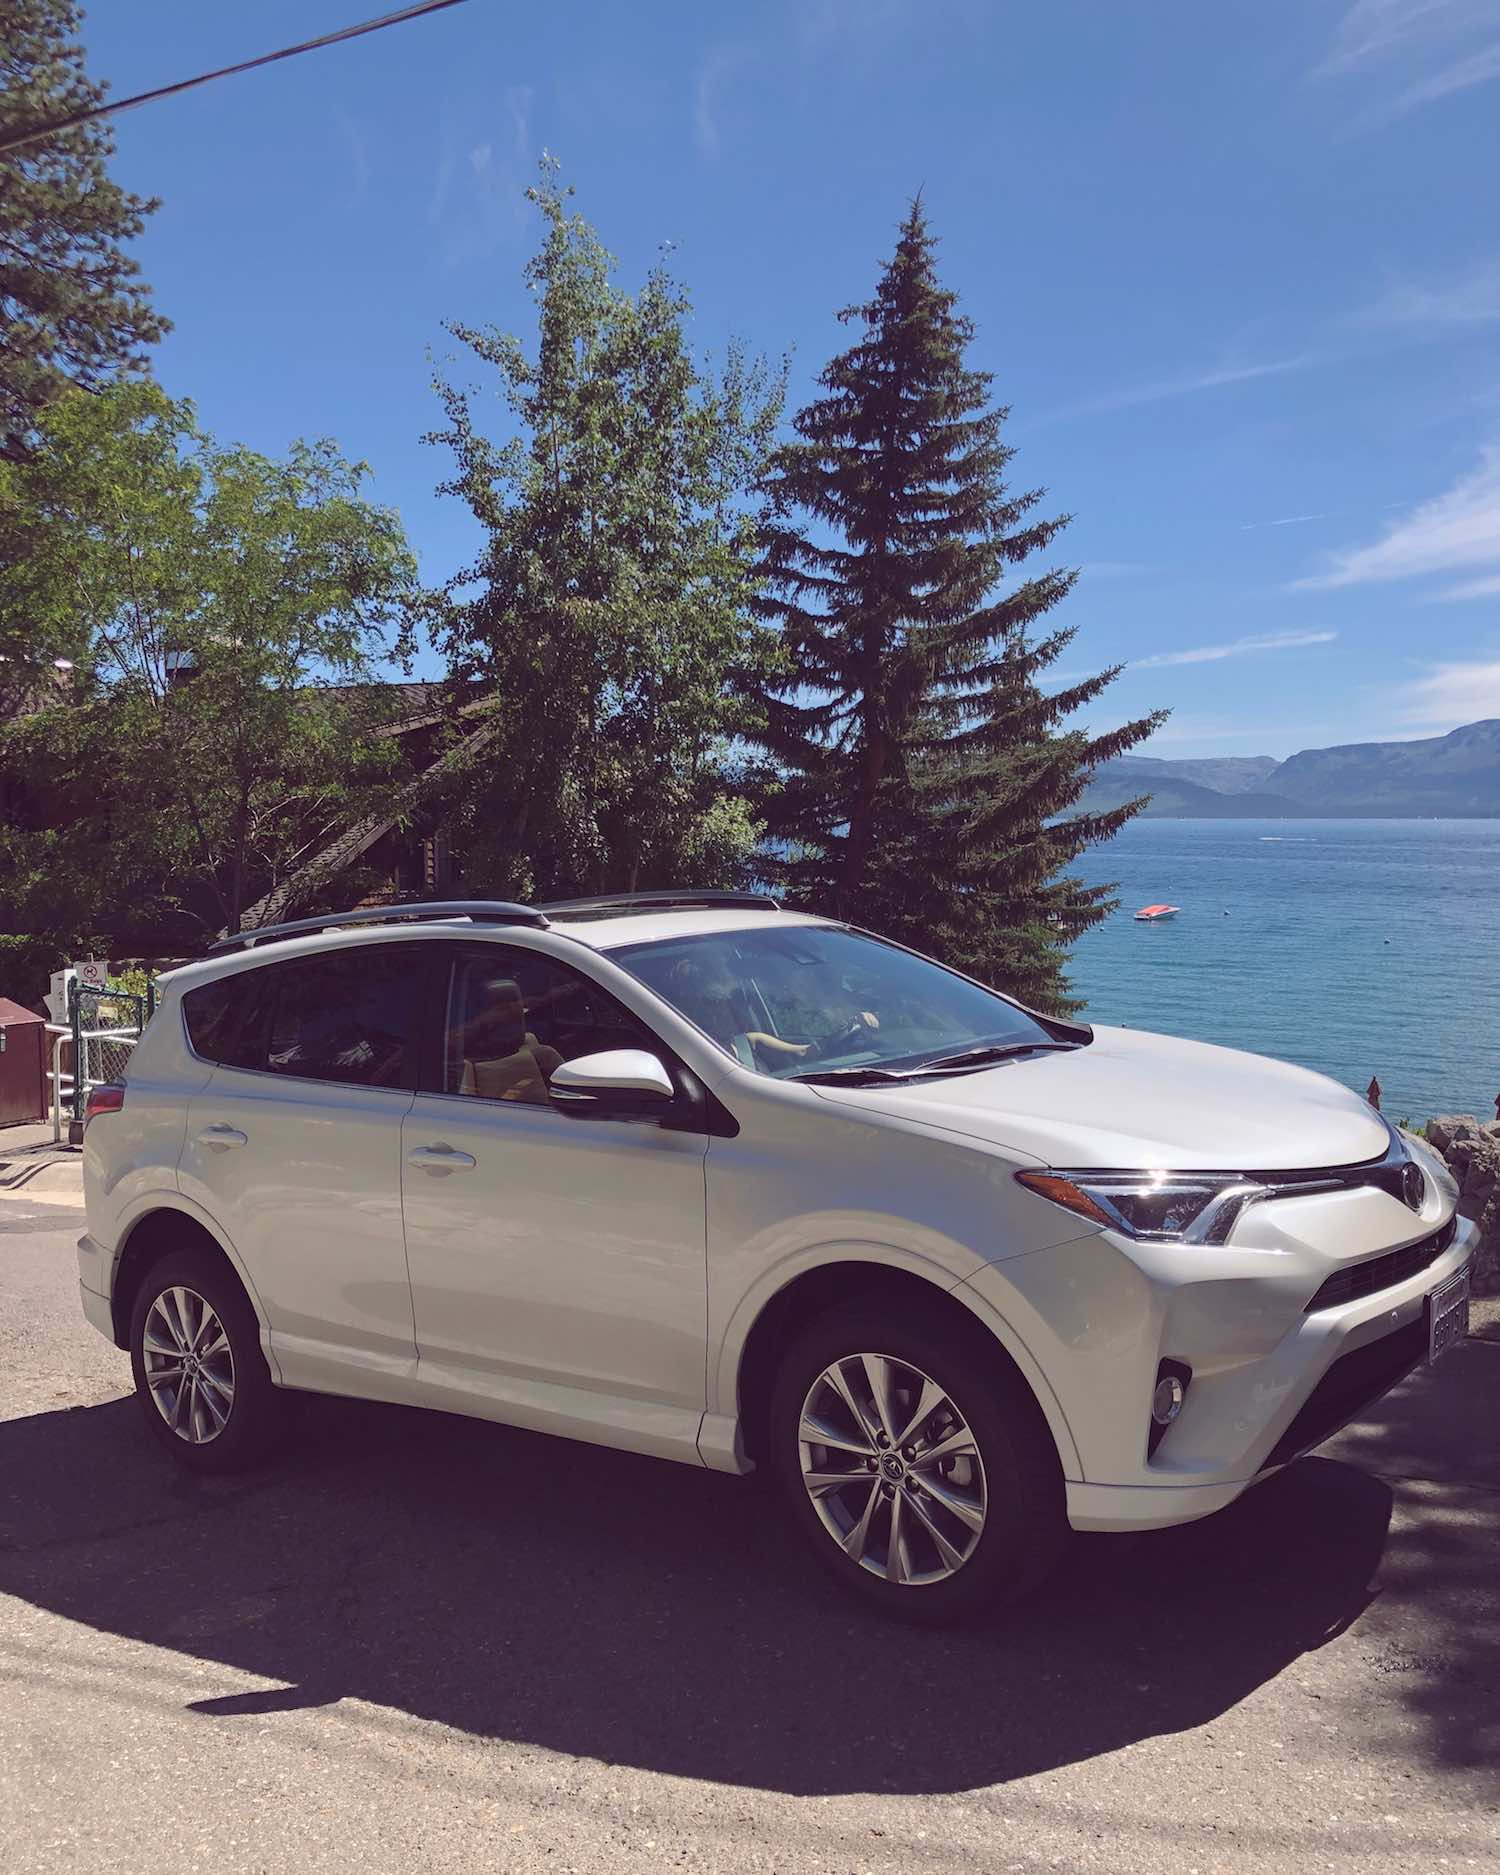 Let's Go Places - 2018 Toyota RAV4 Platinum in Lake Tahoe